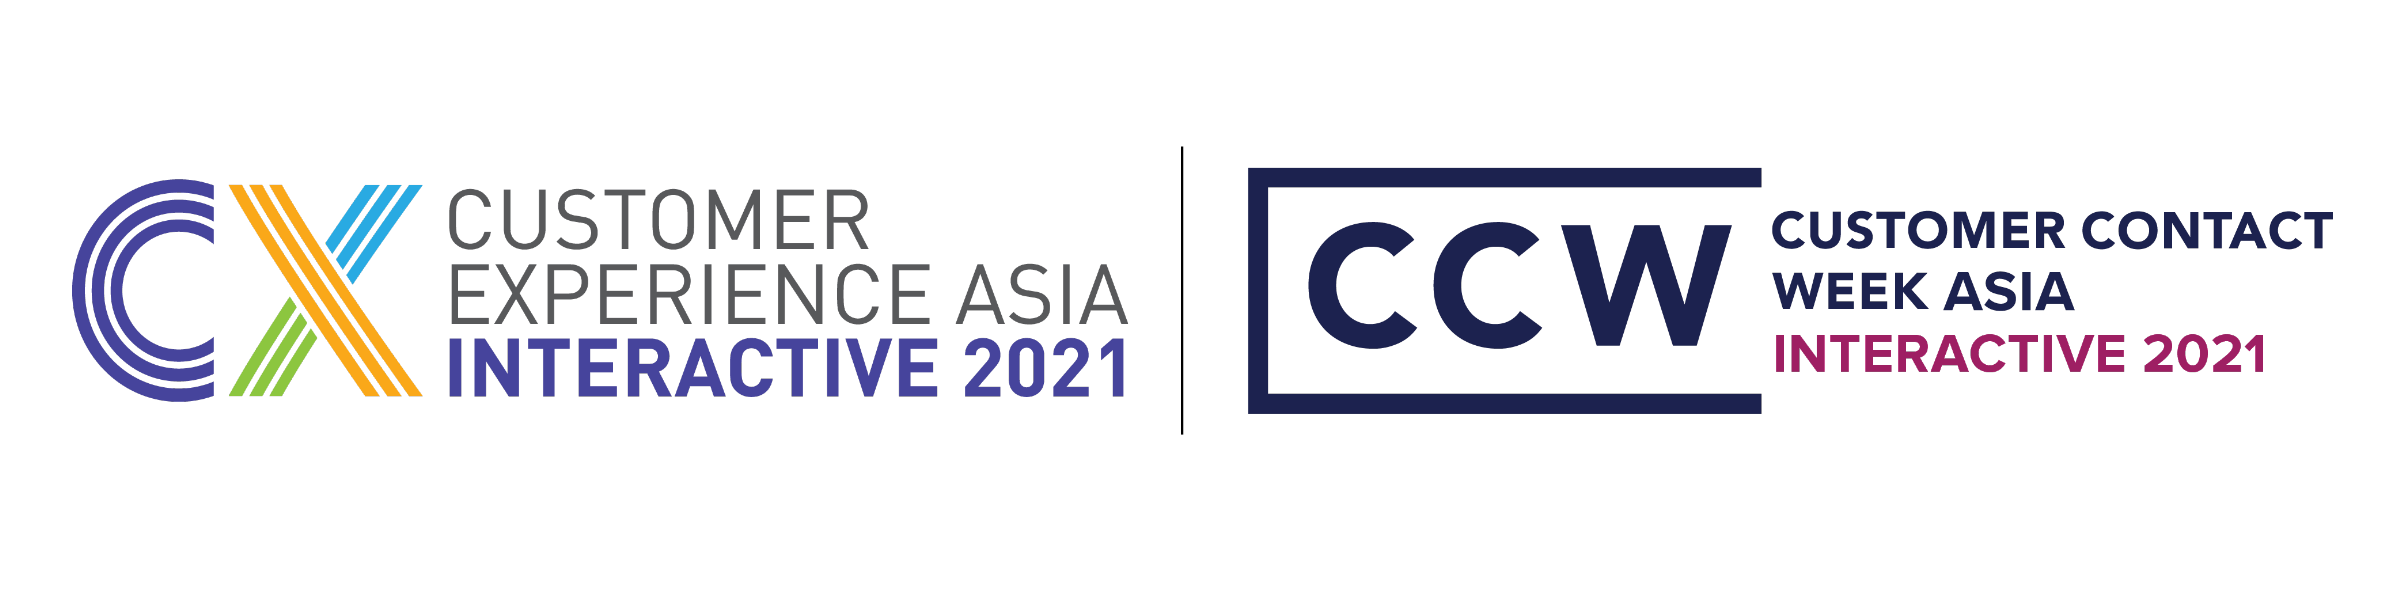 Customer Contact Week Asia Interactive 2021